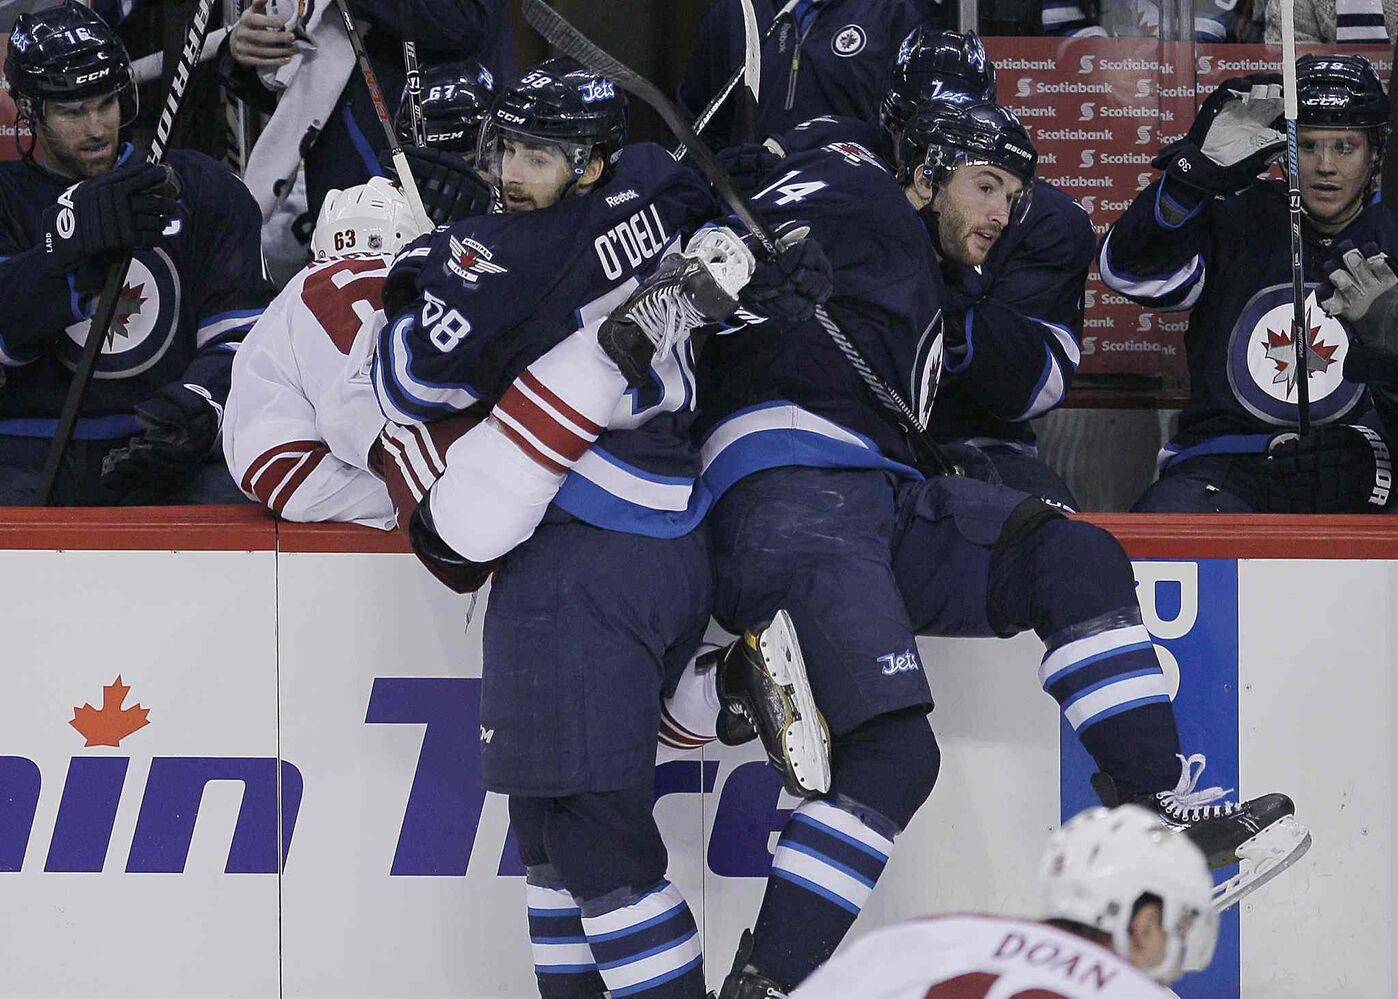 Winnipeg Jets' Eric O'Dell (58) and Anthony Peluso (14) check Phoenix Coyotes' Mike Ribeiro over the boards. (John Woods / Winnipeg Free Press)